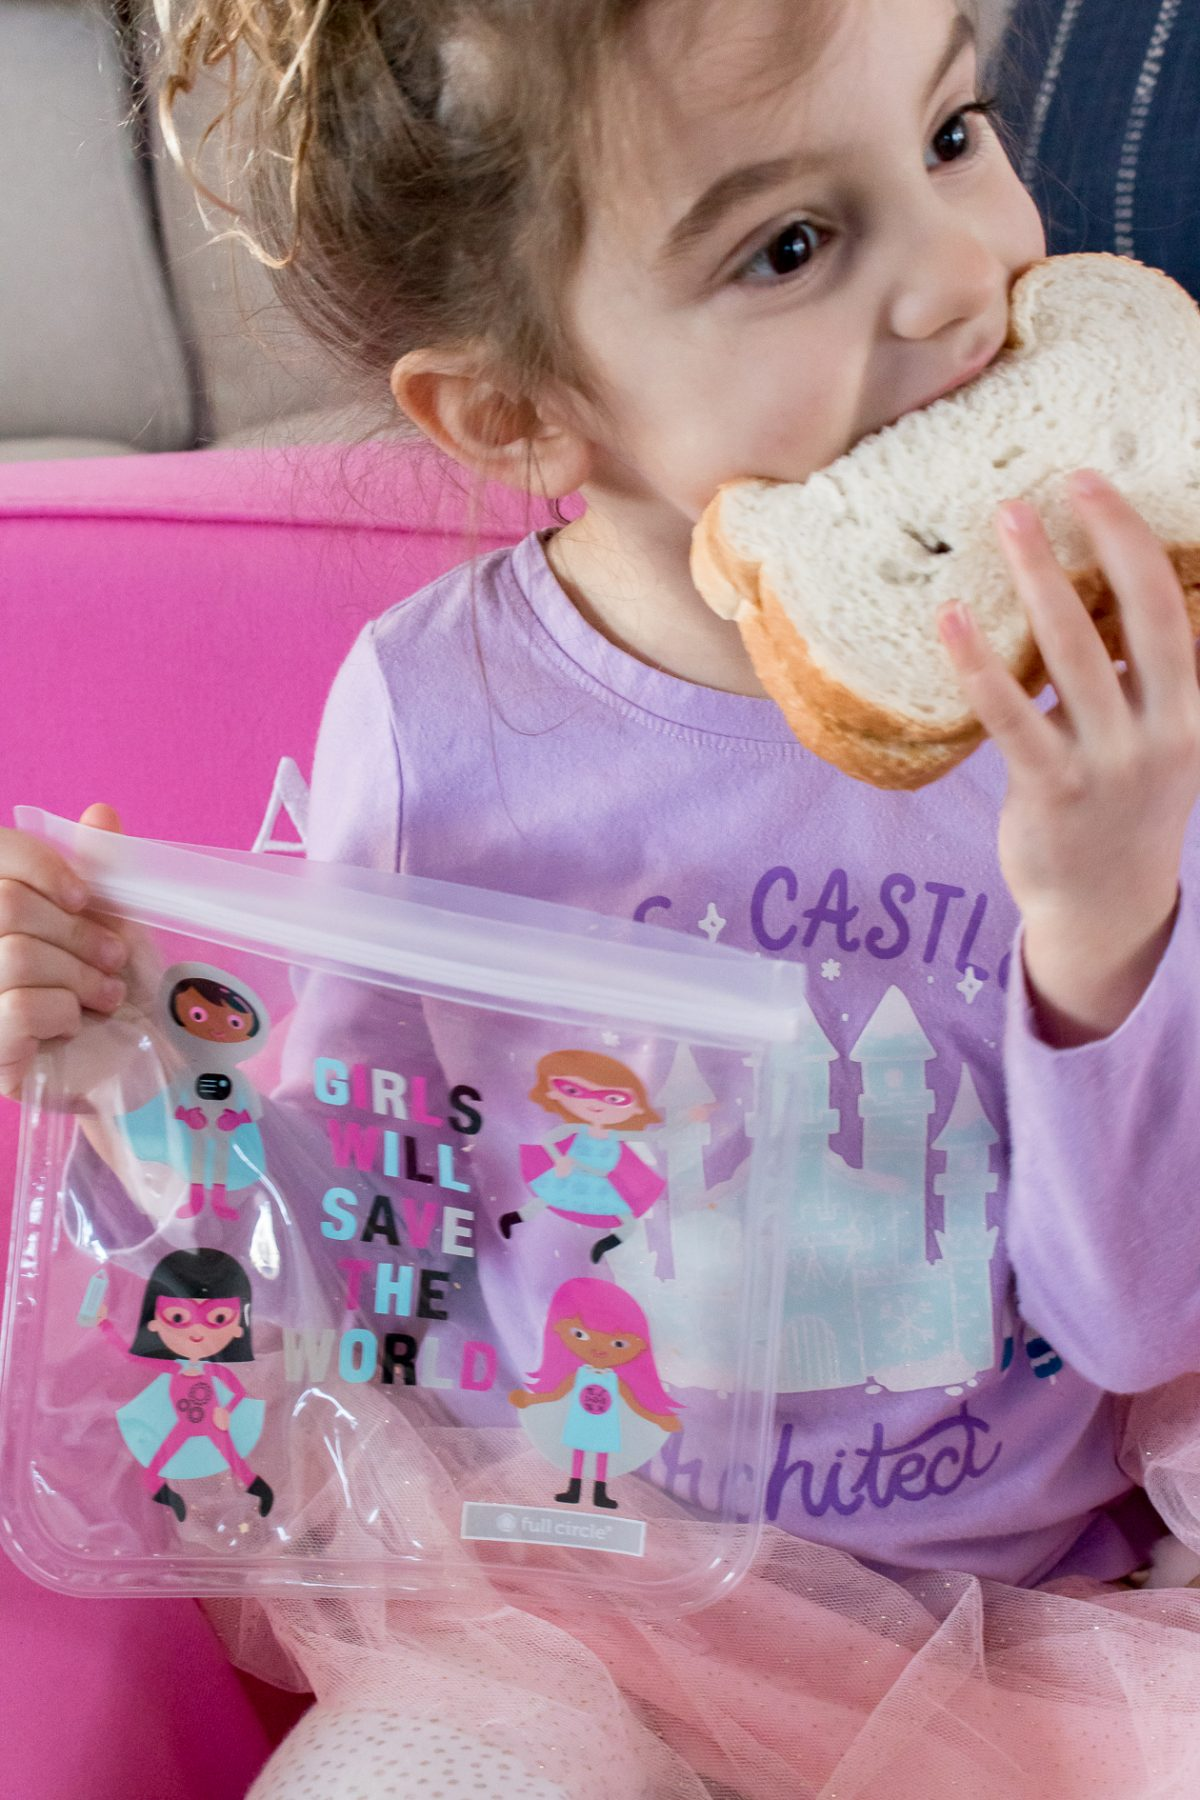 Little girl wearing a purple shirt holding reusable snack bag with sandwich inside that says Girls Will Save the World